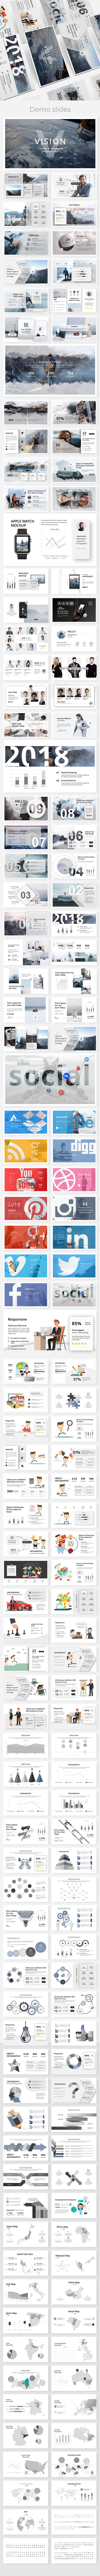 Vision Creative - Model Powerpoint Template - Creative PowerPoint Templates